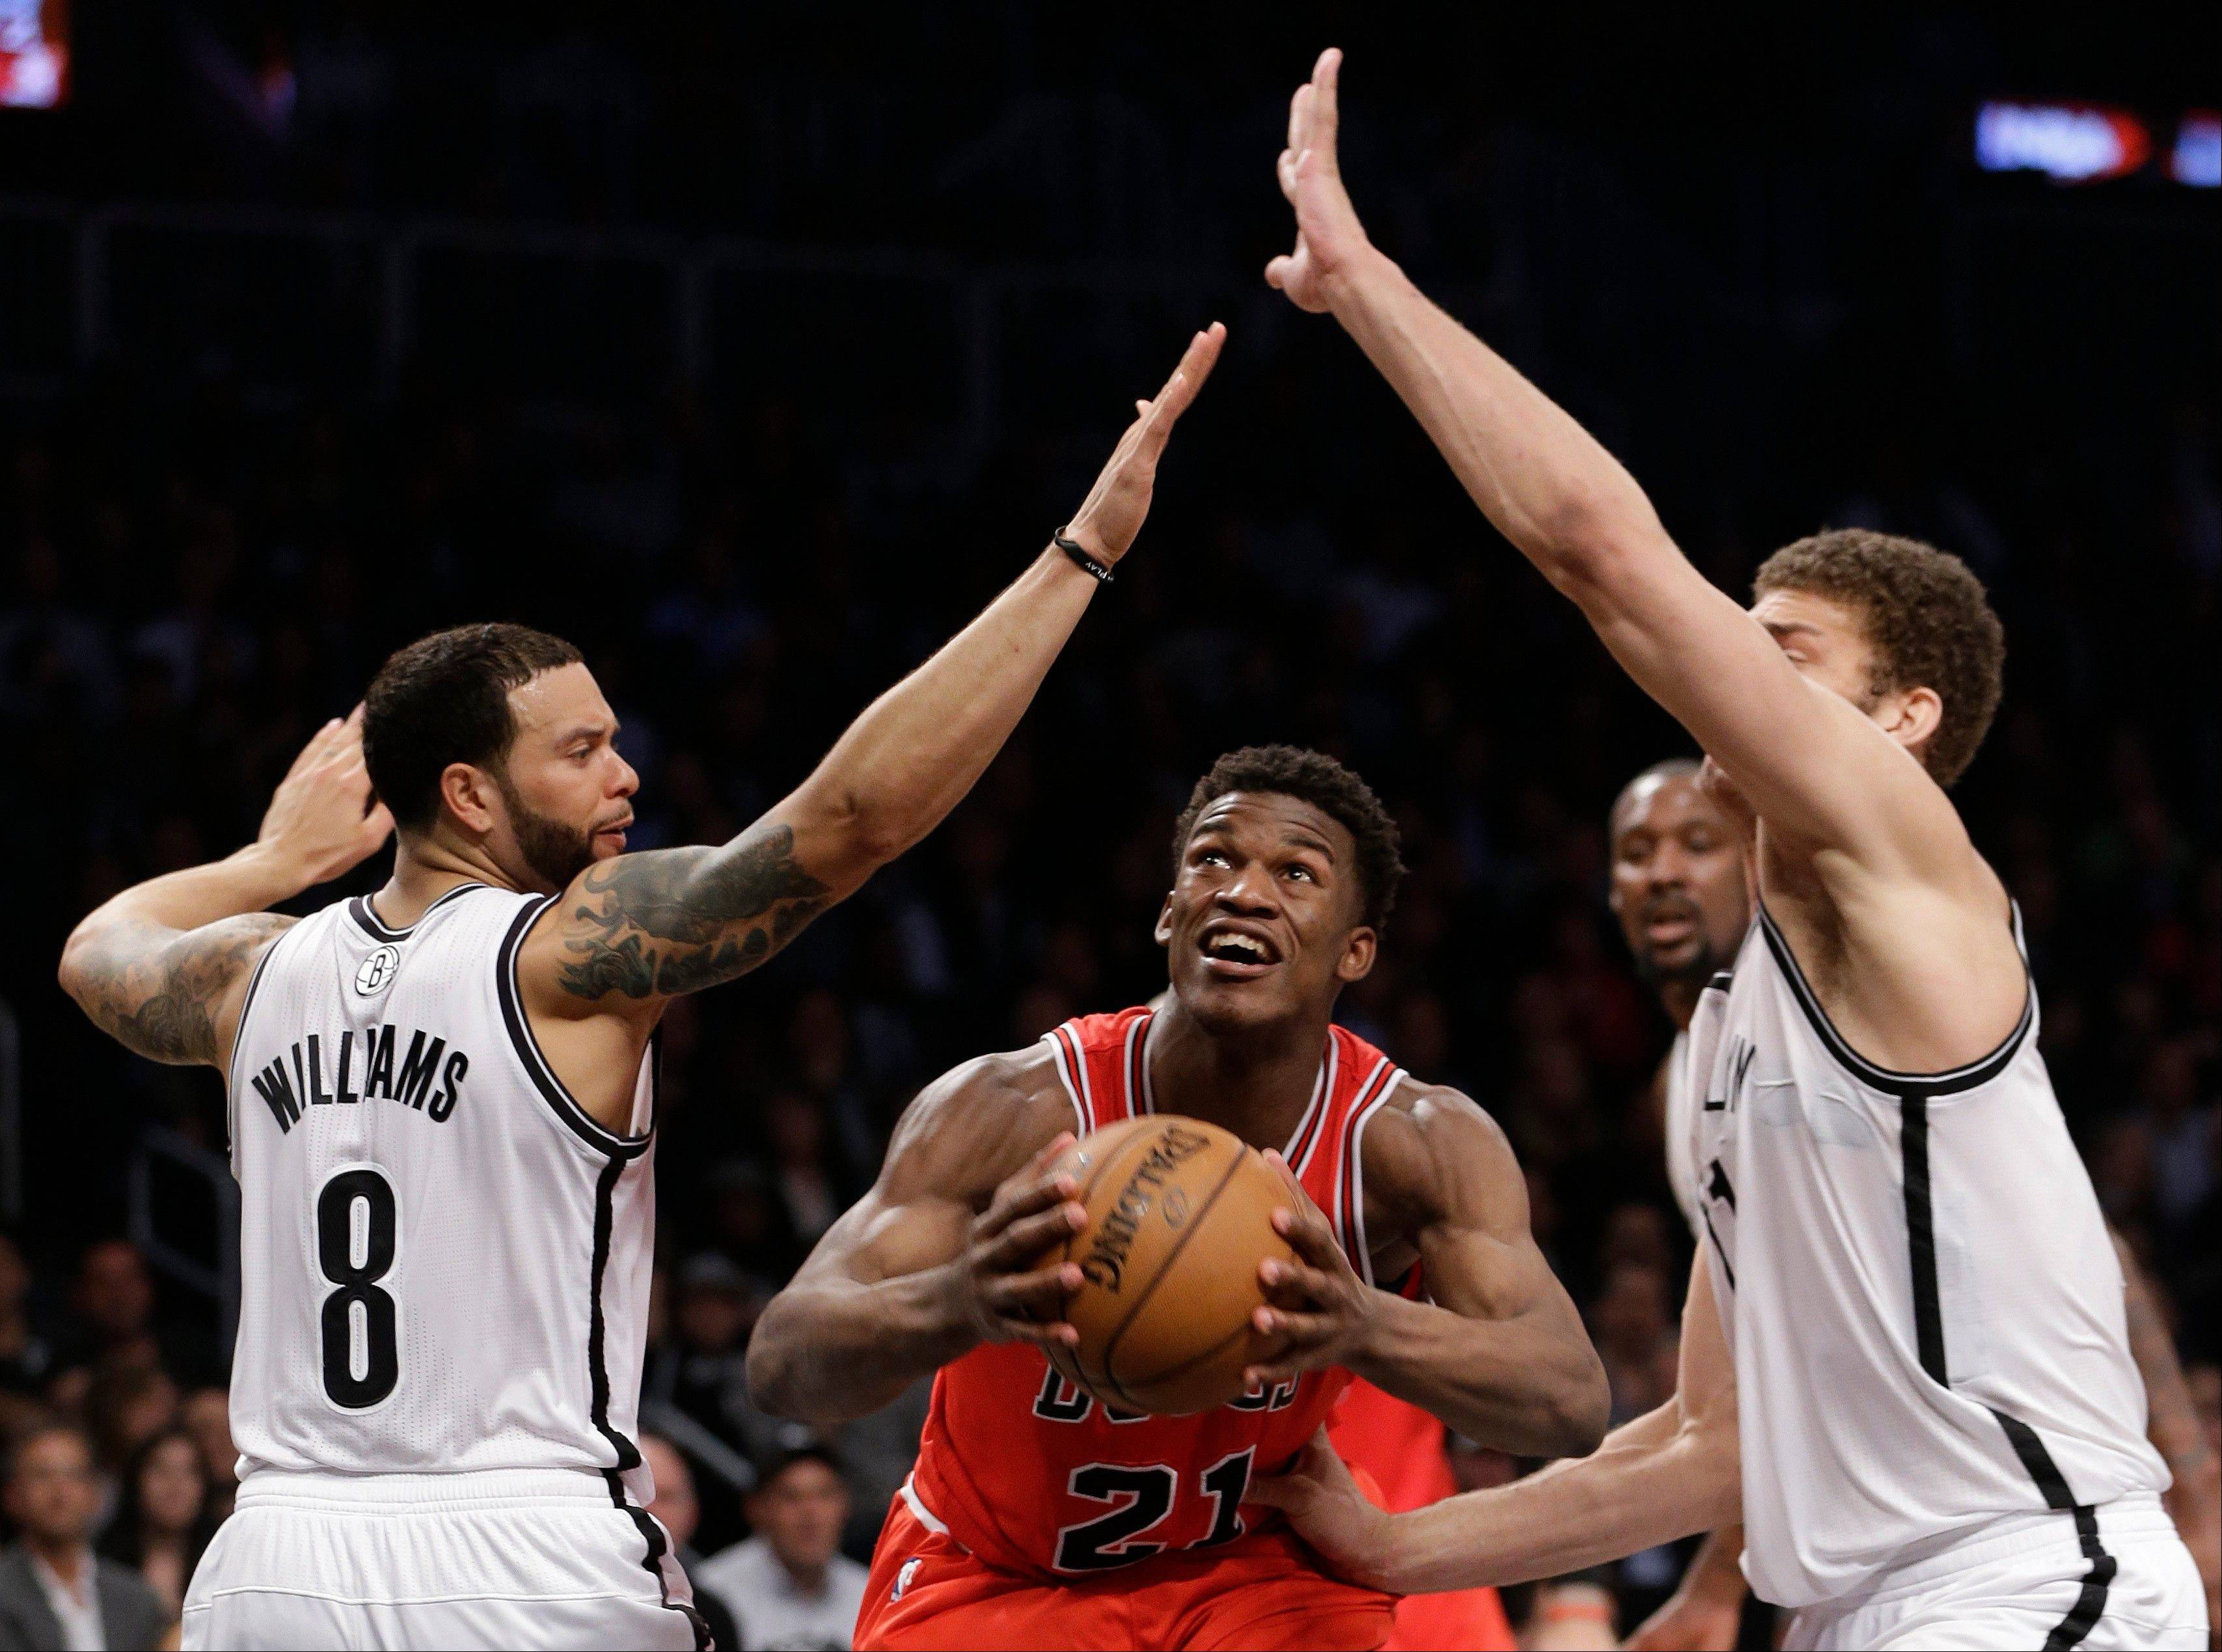 Brooklyn Nets guard Deron Williams, left, and center Brook Lopez surround the Bulls' Jimmy Butler in the second half of Game 5 Monday night.